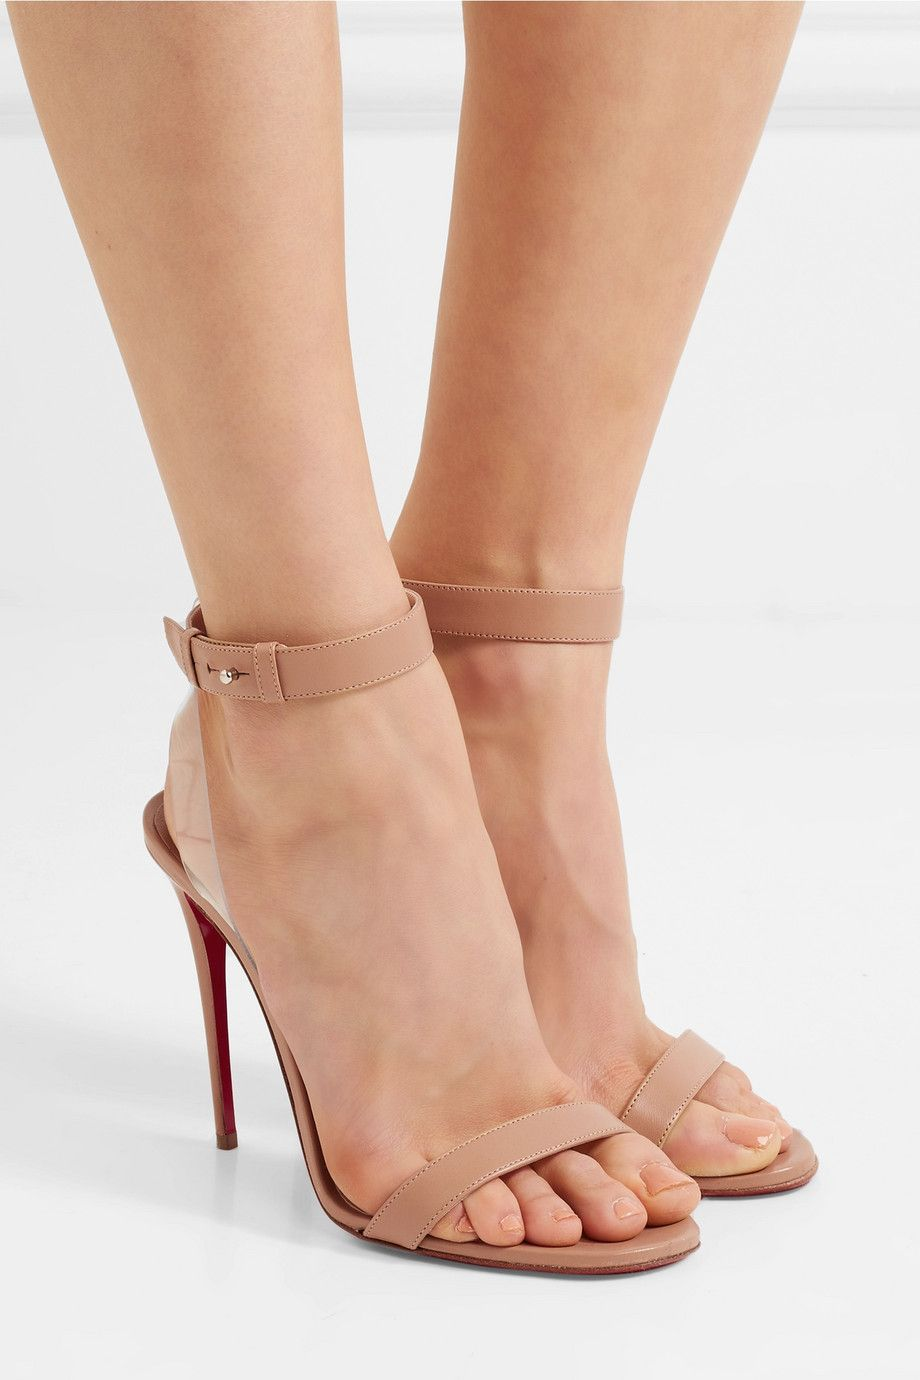 555eef028aab Christian Louboutin - Jonatina 100 PVC-trimmed leather sandals ...